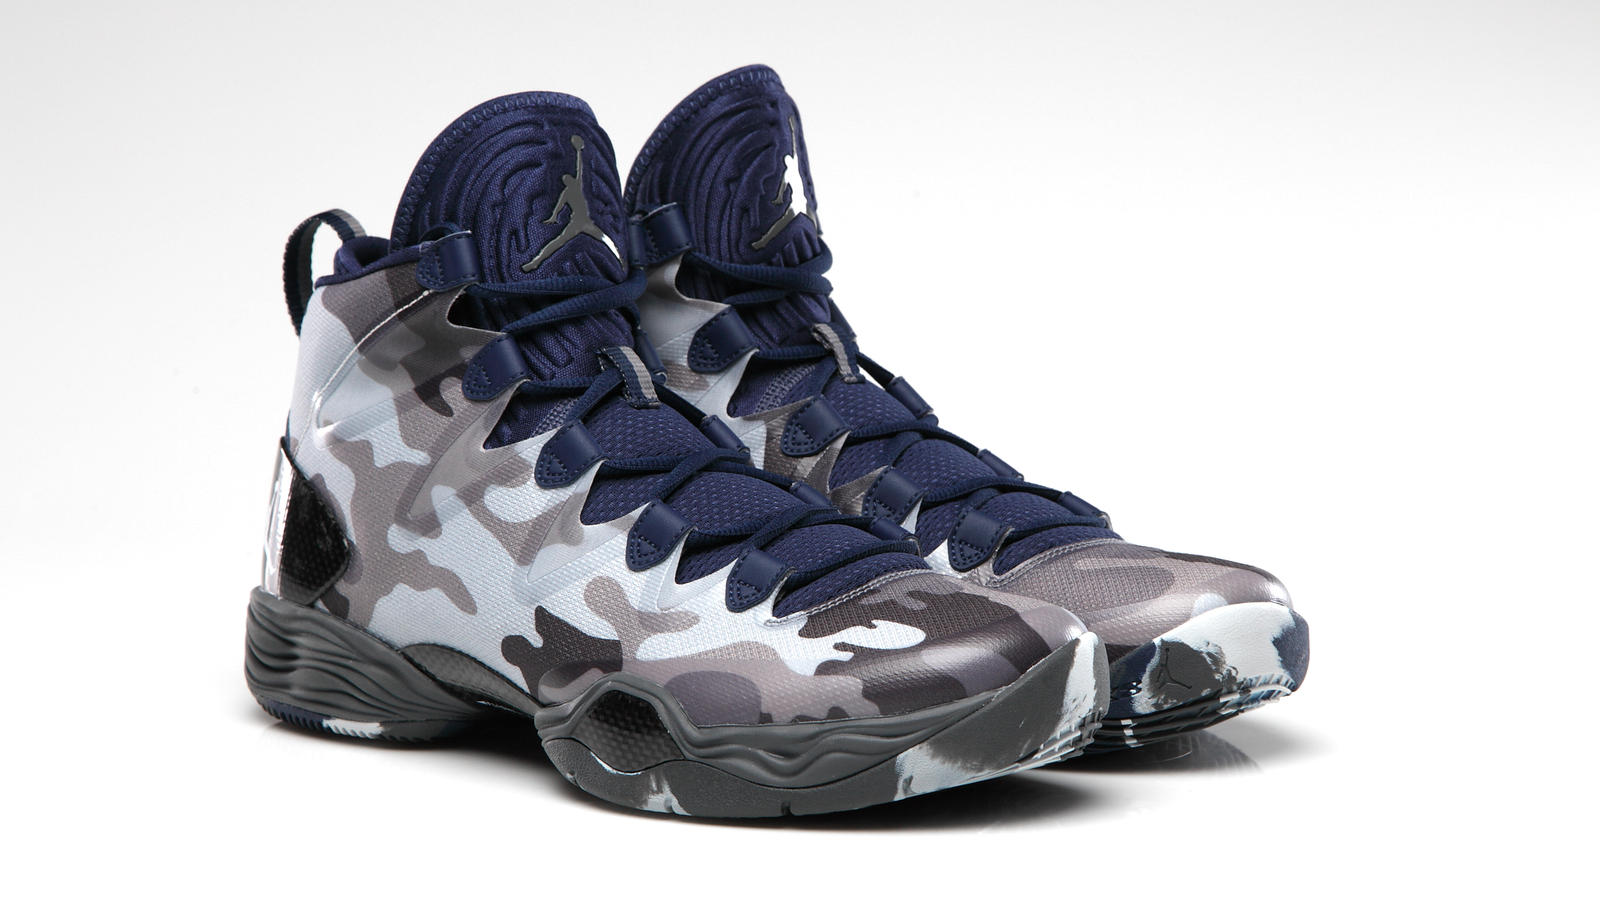 733eea626d1e THE AIR JORDAN XX8 SE HITS STORES TODAY - Nike News